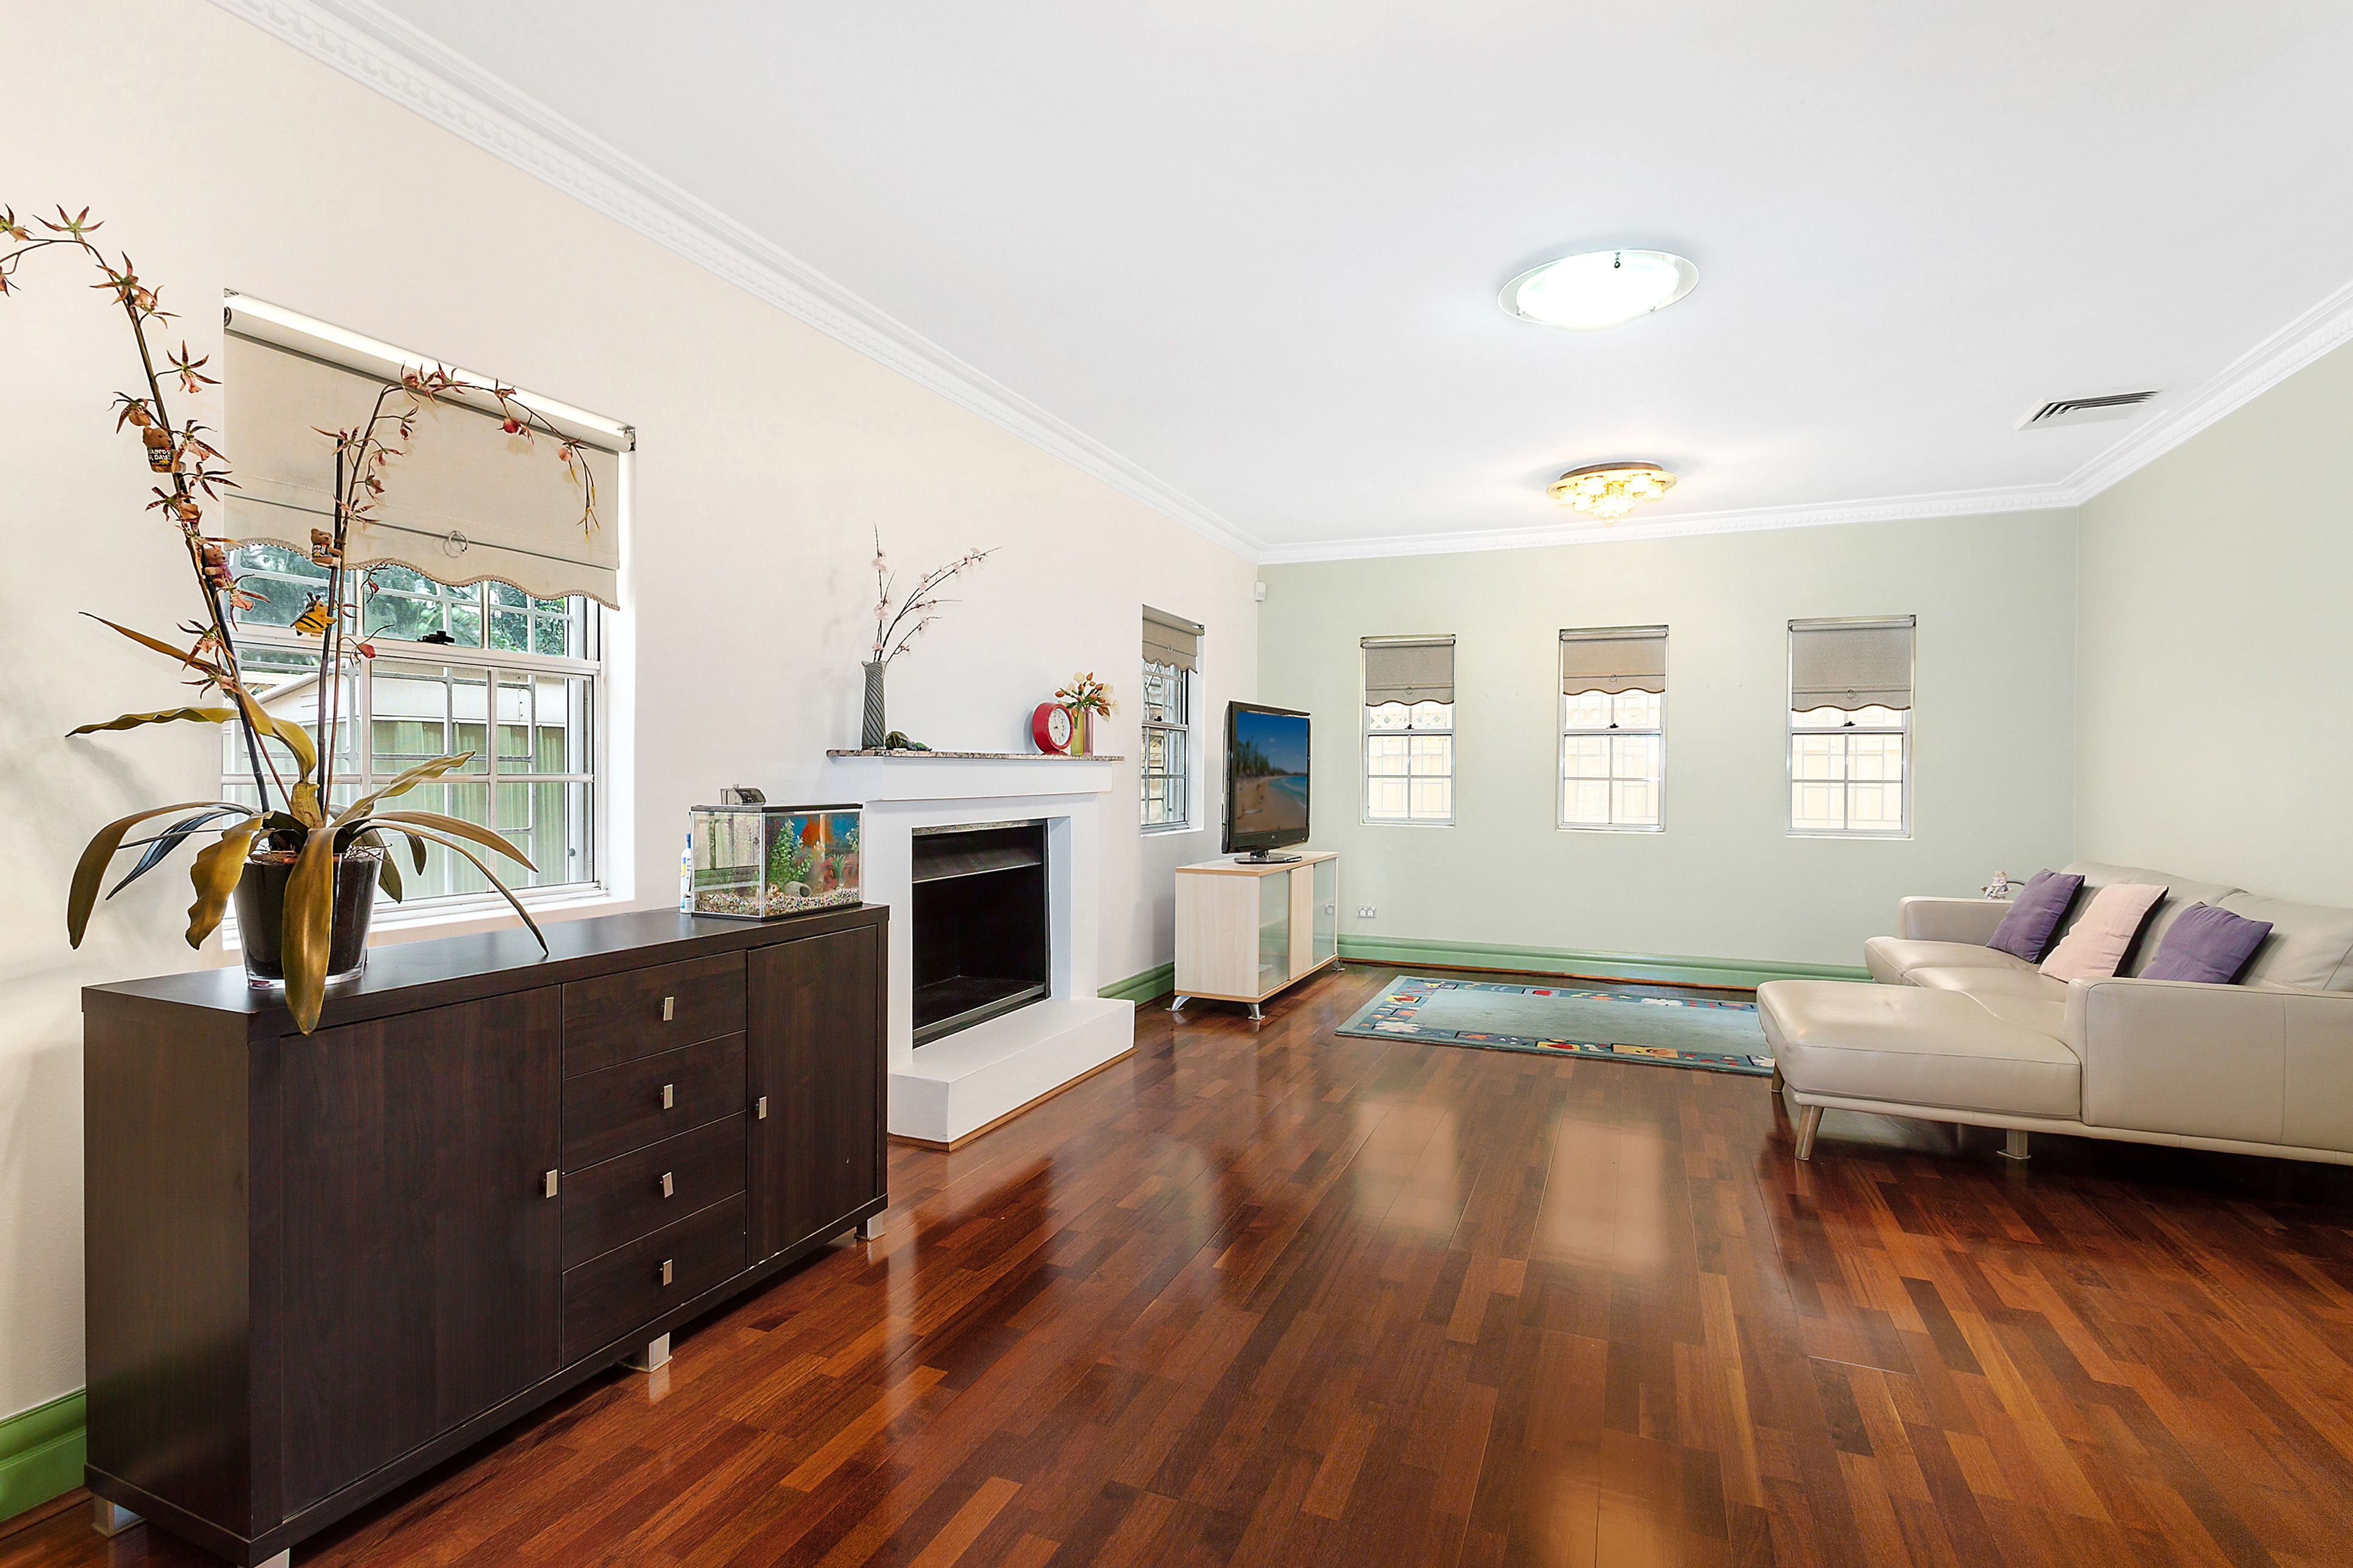 12/150 Dean Street, Strathfield South NSW 2136